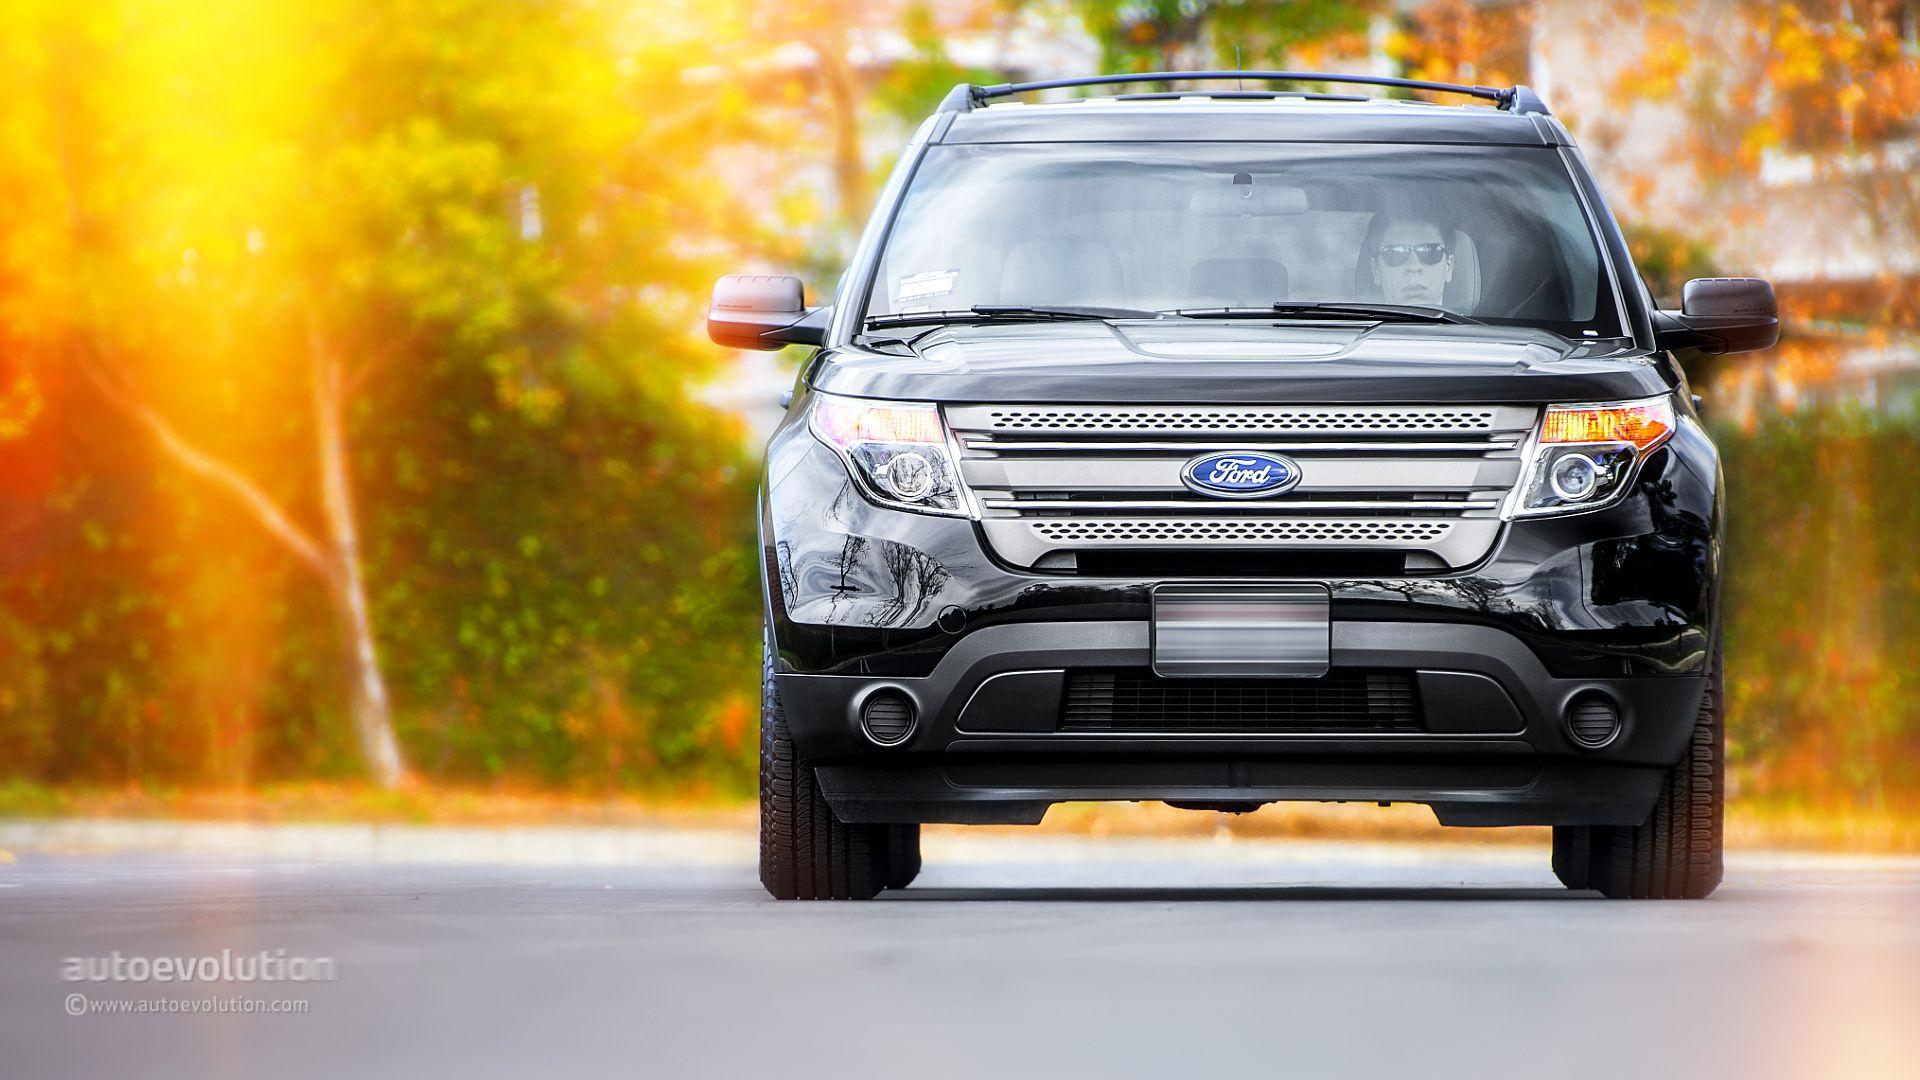 2014 Ford Explorer HD Wallpapers